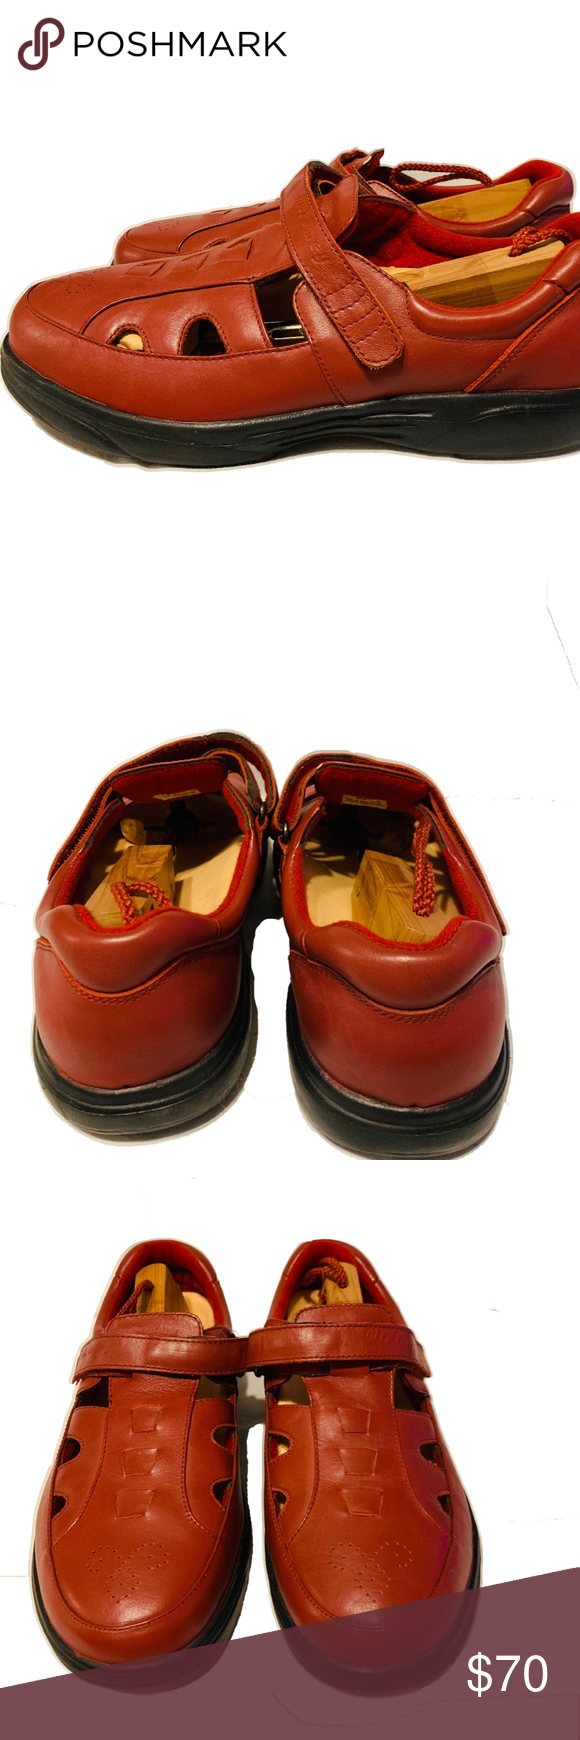 901aa030d2bf Apis Mt. Emey Women s Orthopedic Leather Sandal 11 These are specialized  orthopedic